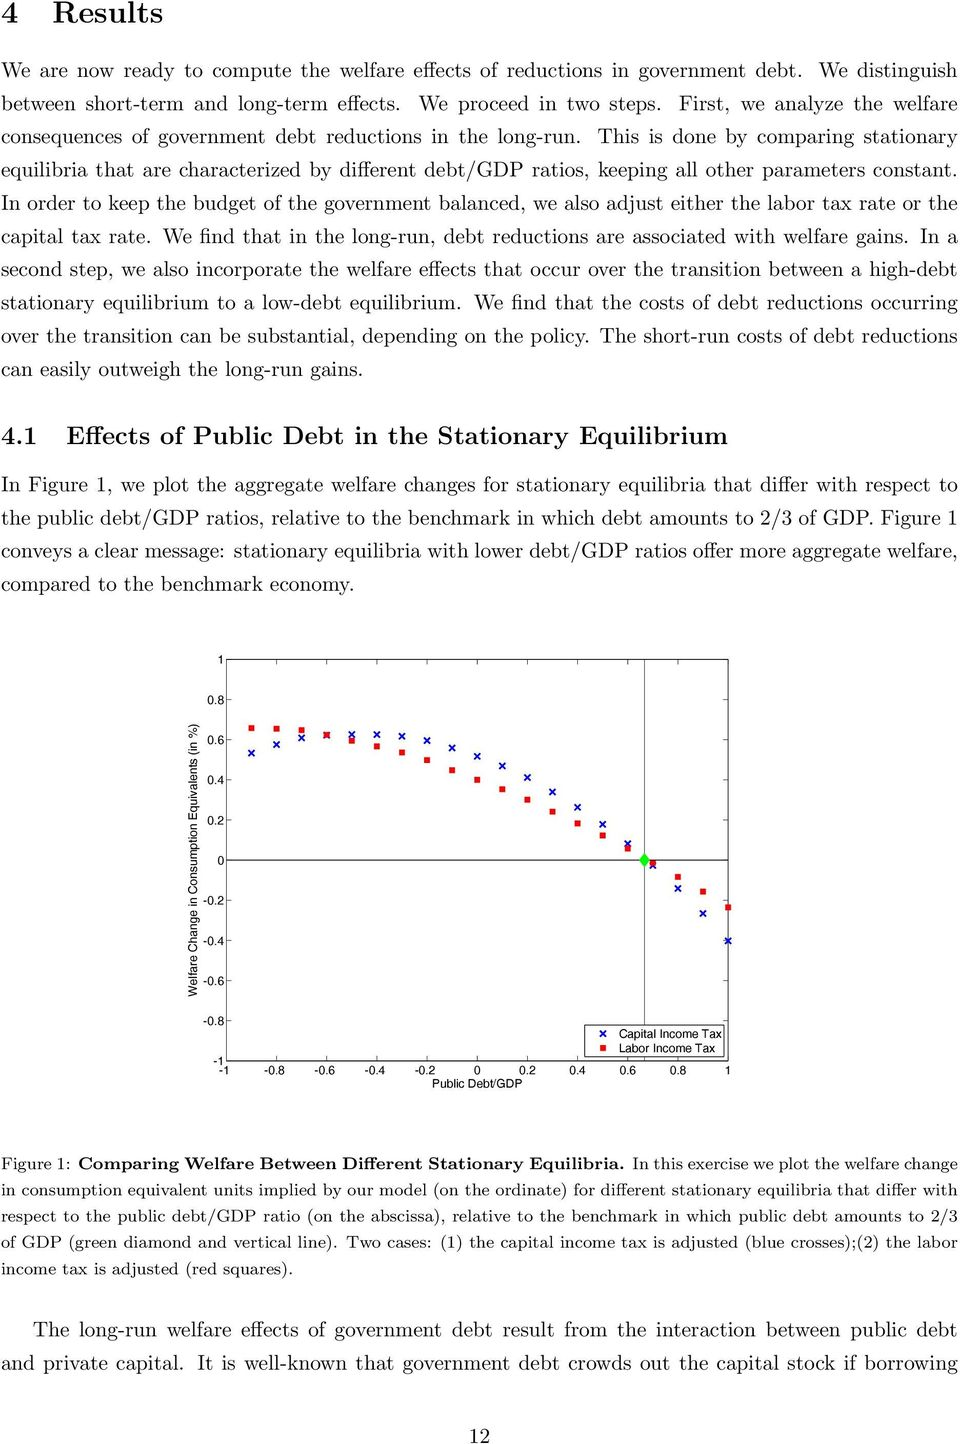 This is done by comparing stationary equilibria that are characterized by different debt/gdp ratios, keeping all other parameters constant.